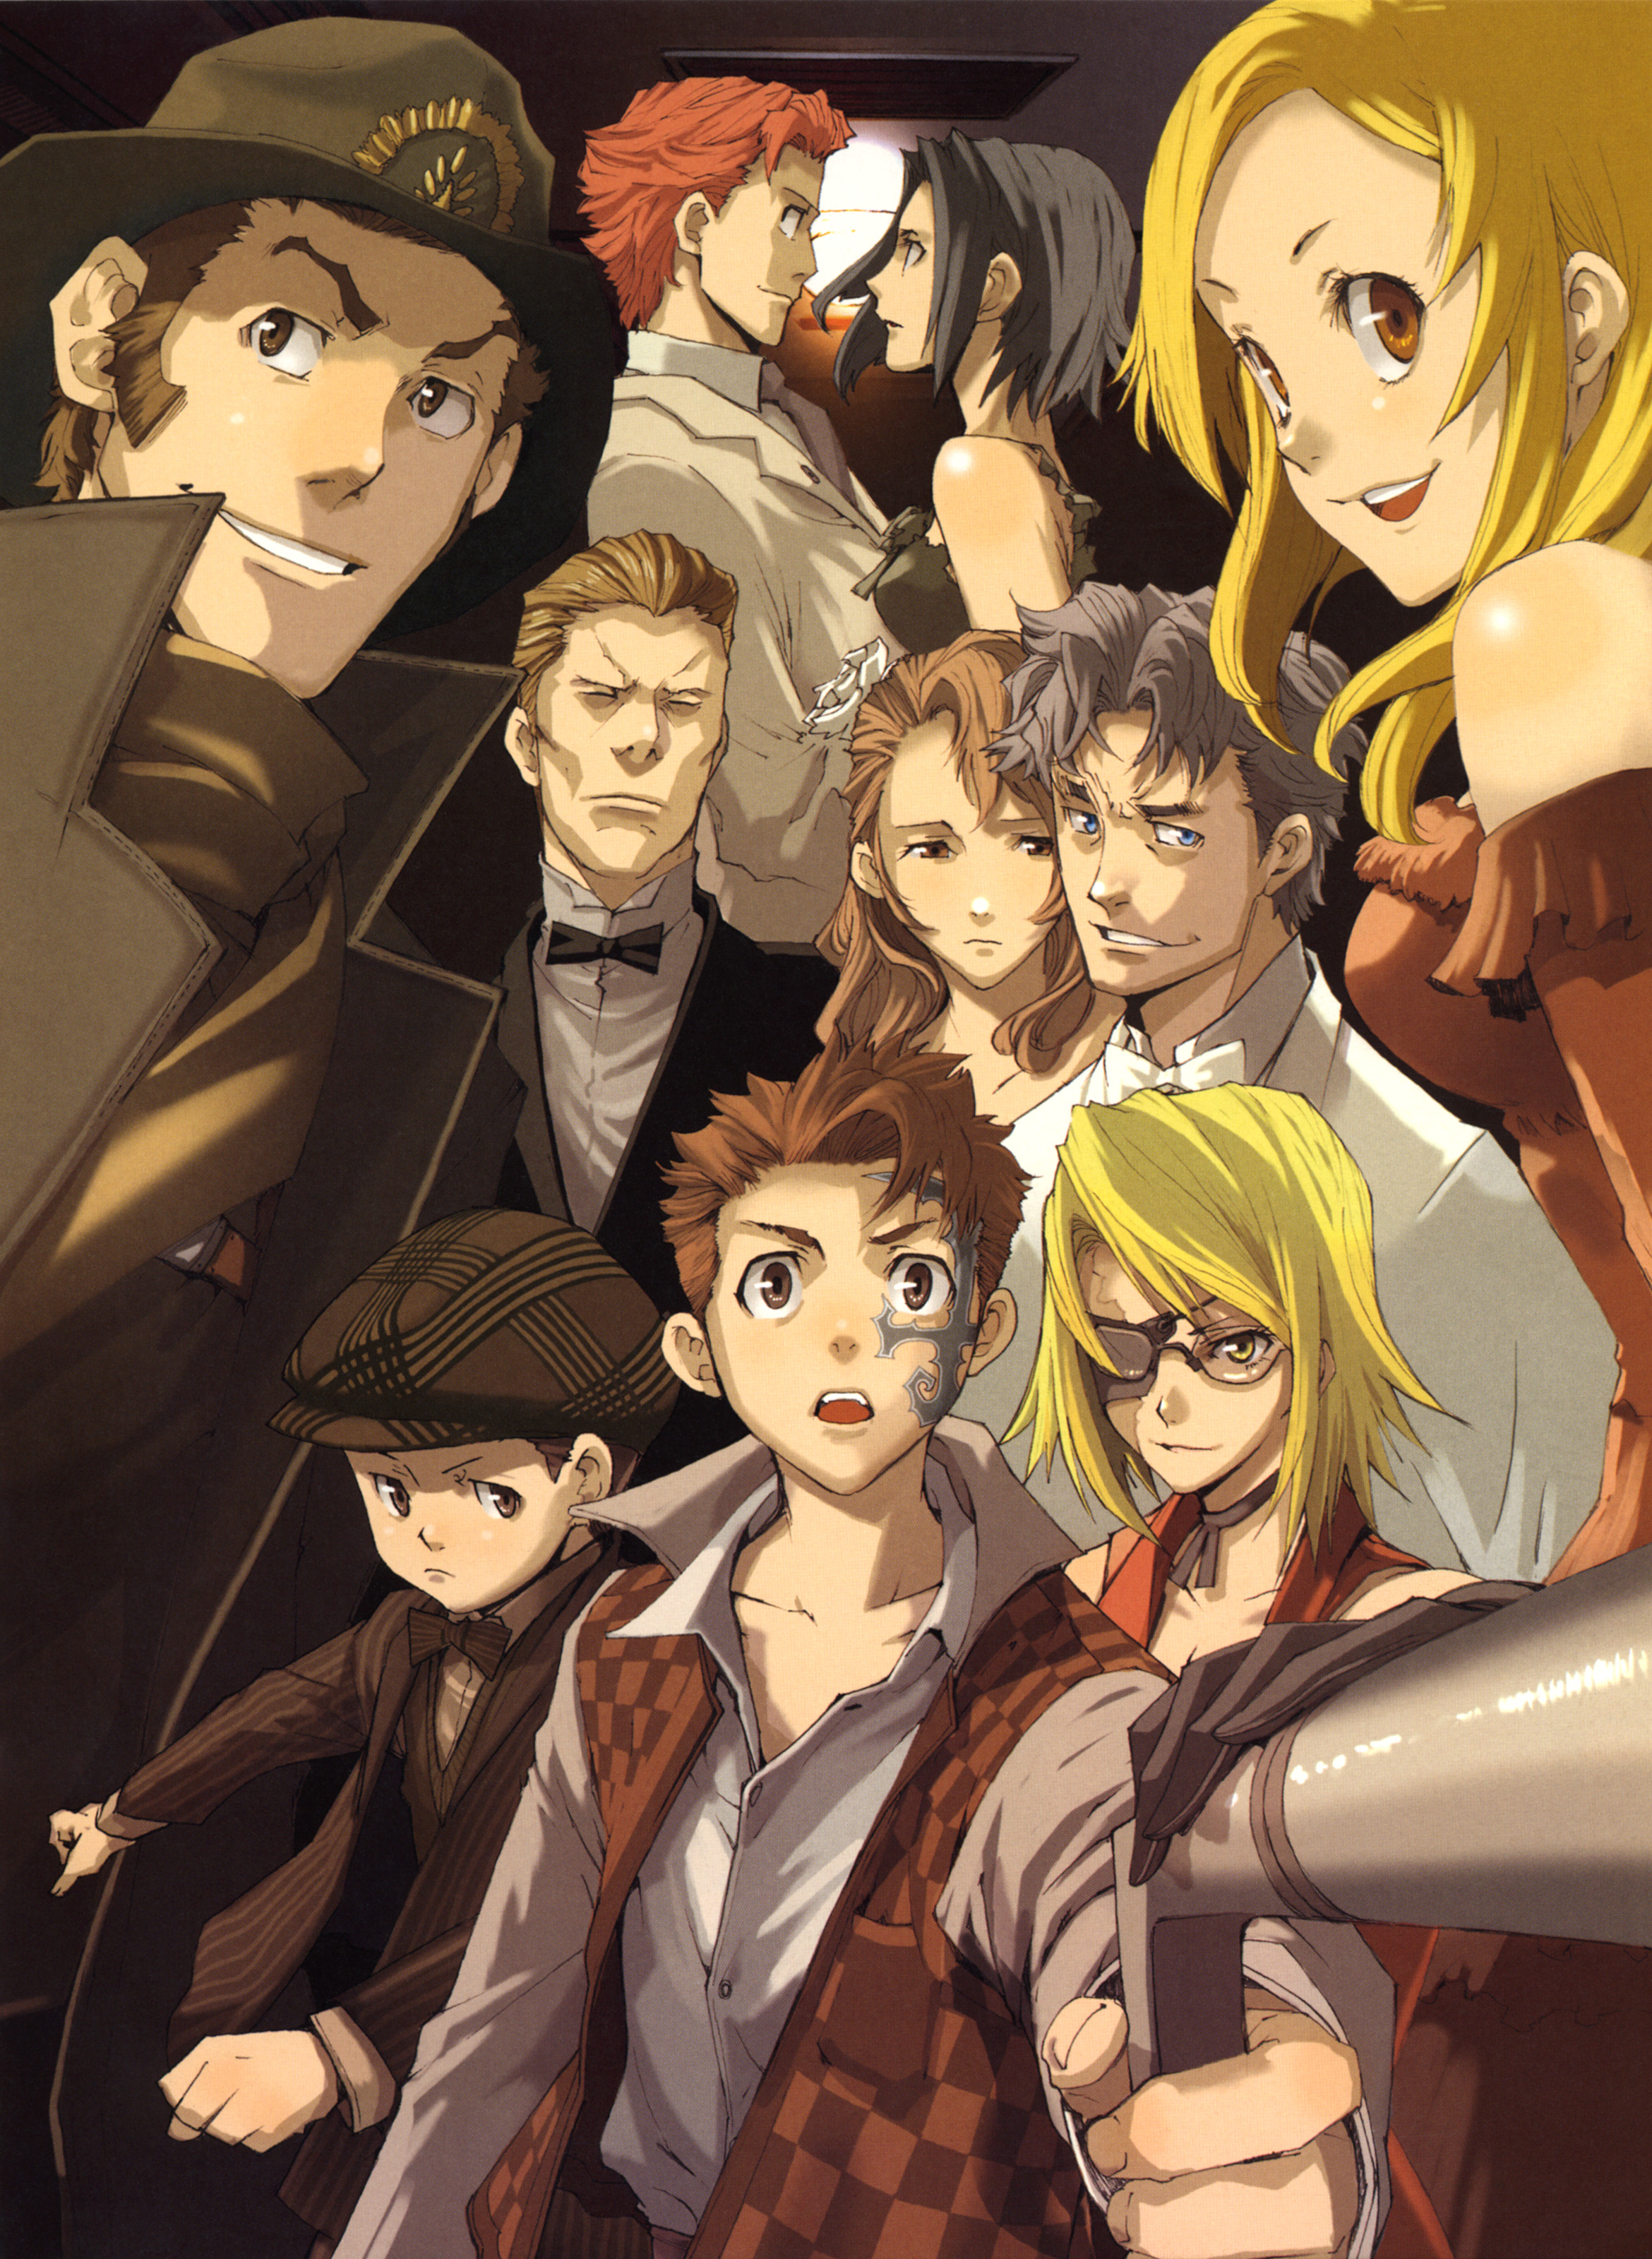 Baccano-Official-Pictures-by-Enami-Katsumi-baccano-33321221-2340-3200.